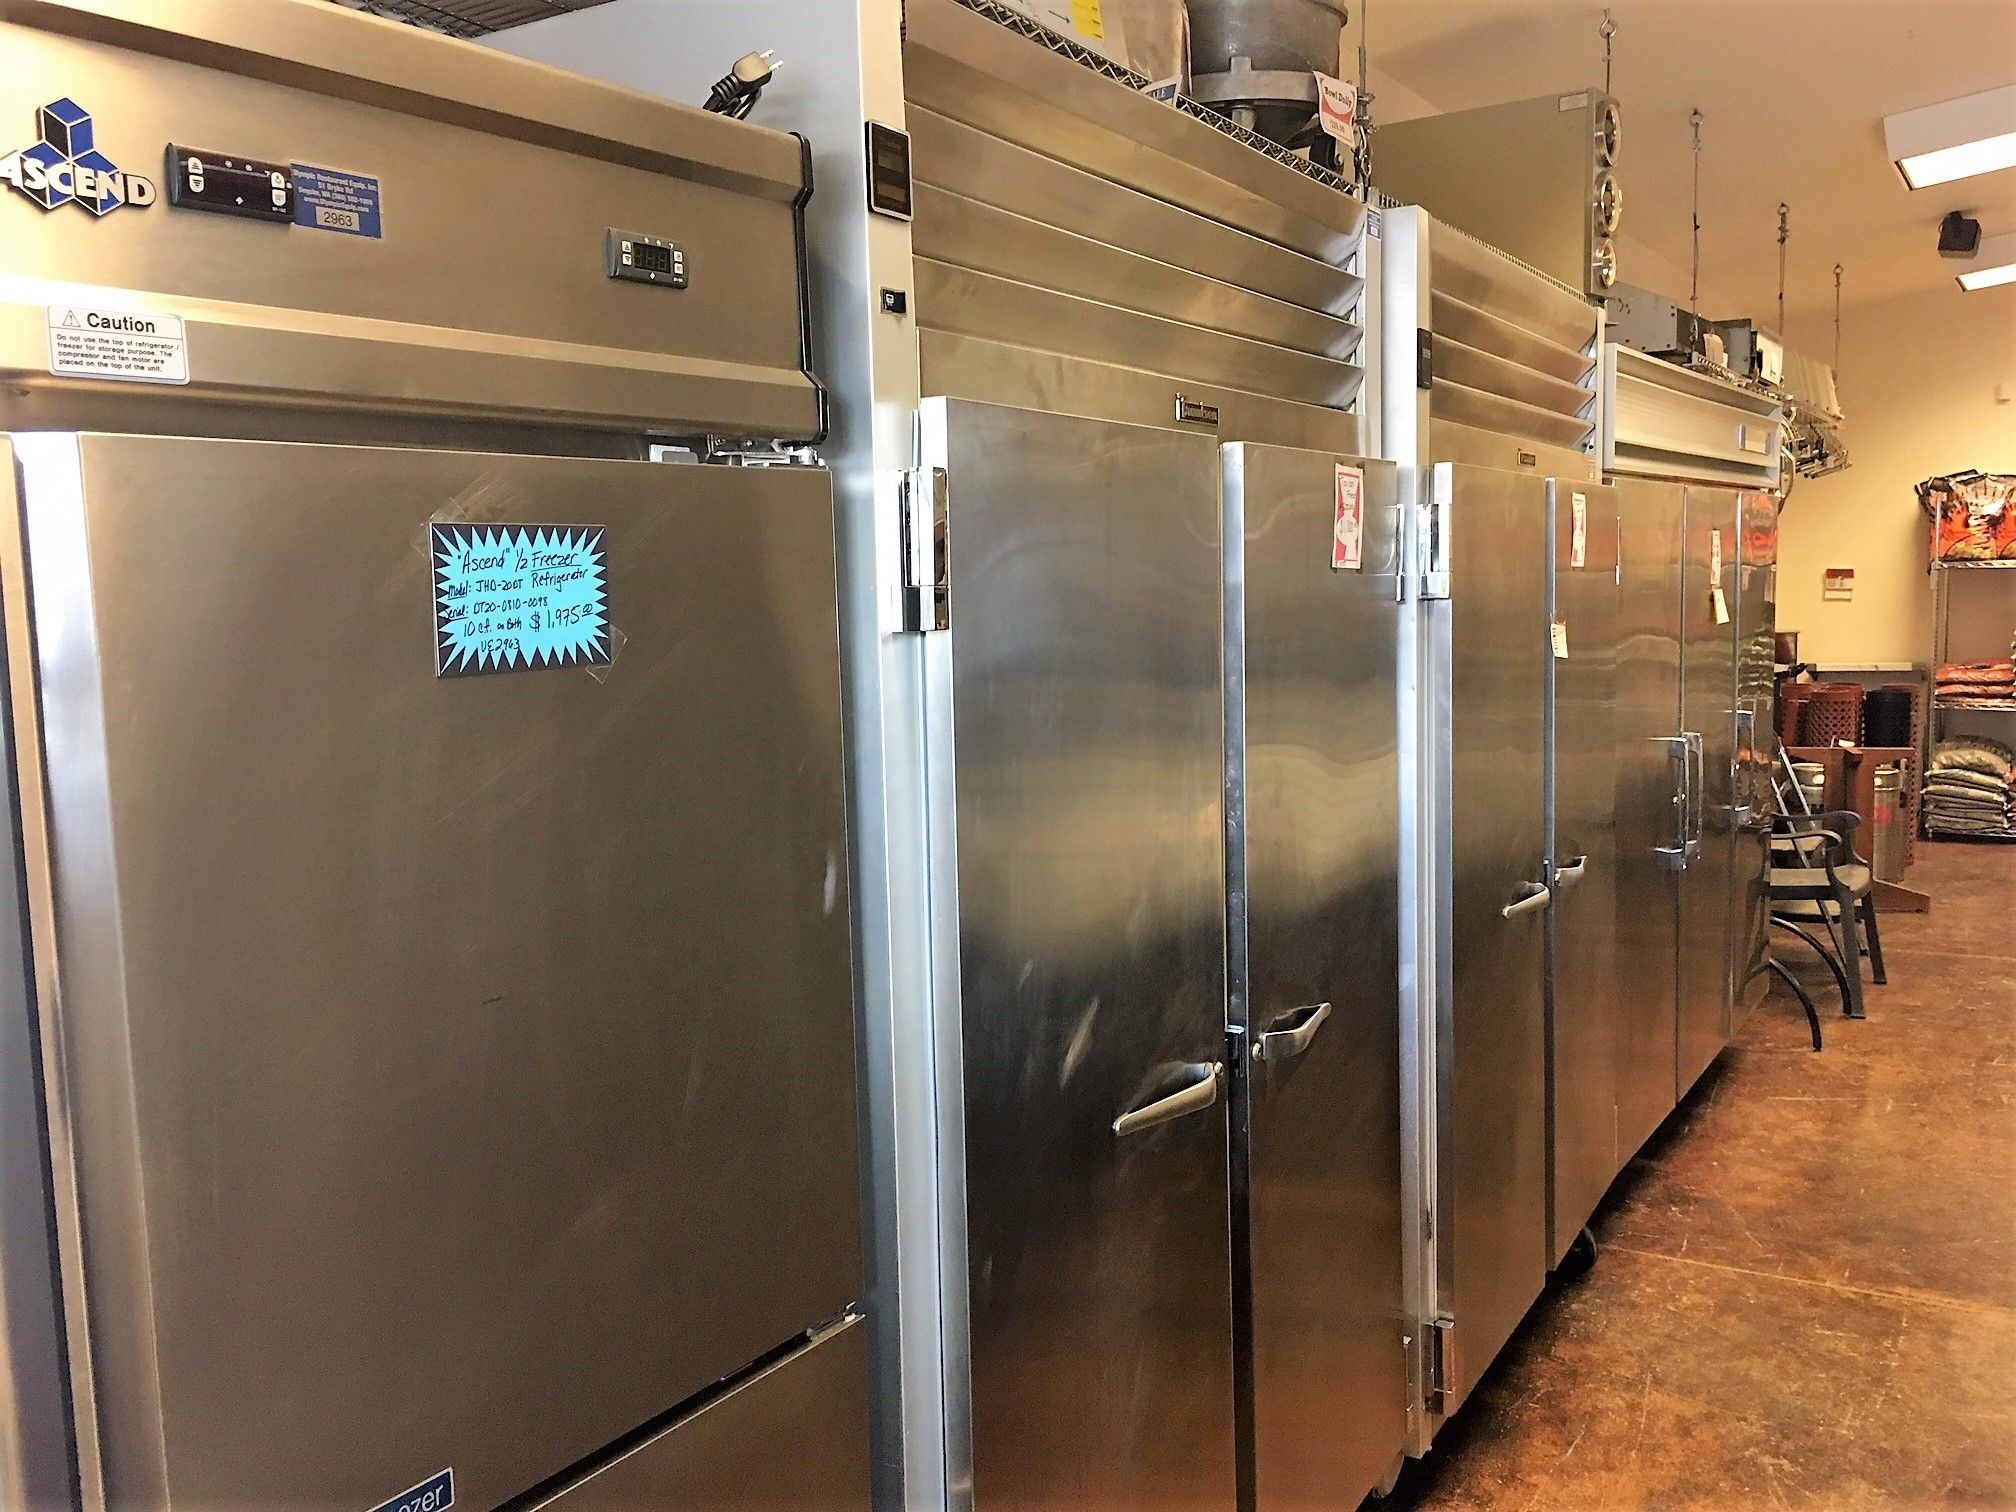 Pin by Olympic Restaurant Equipment Inc. on Olympic